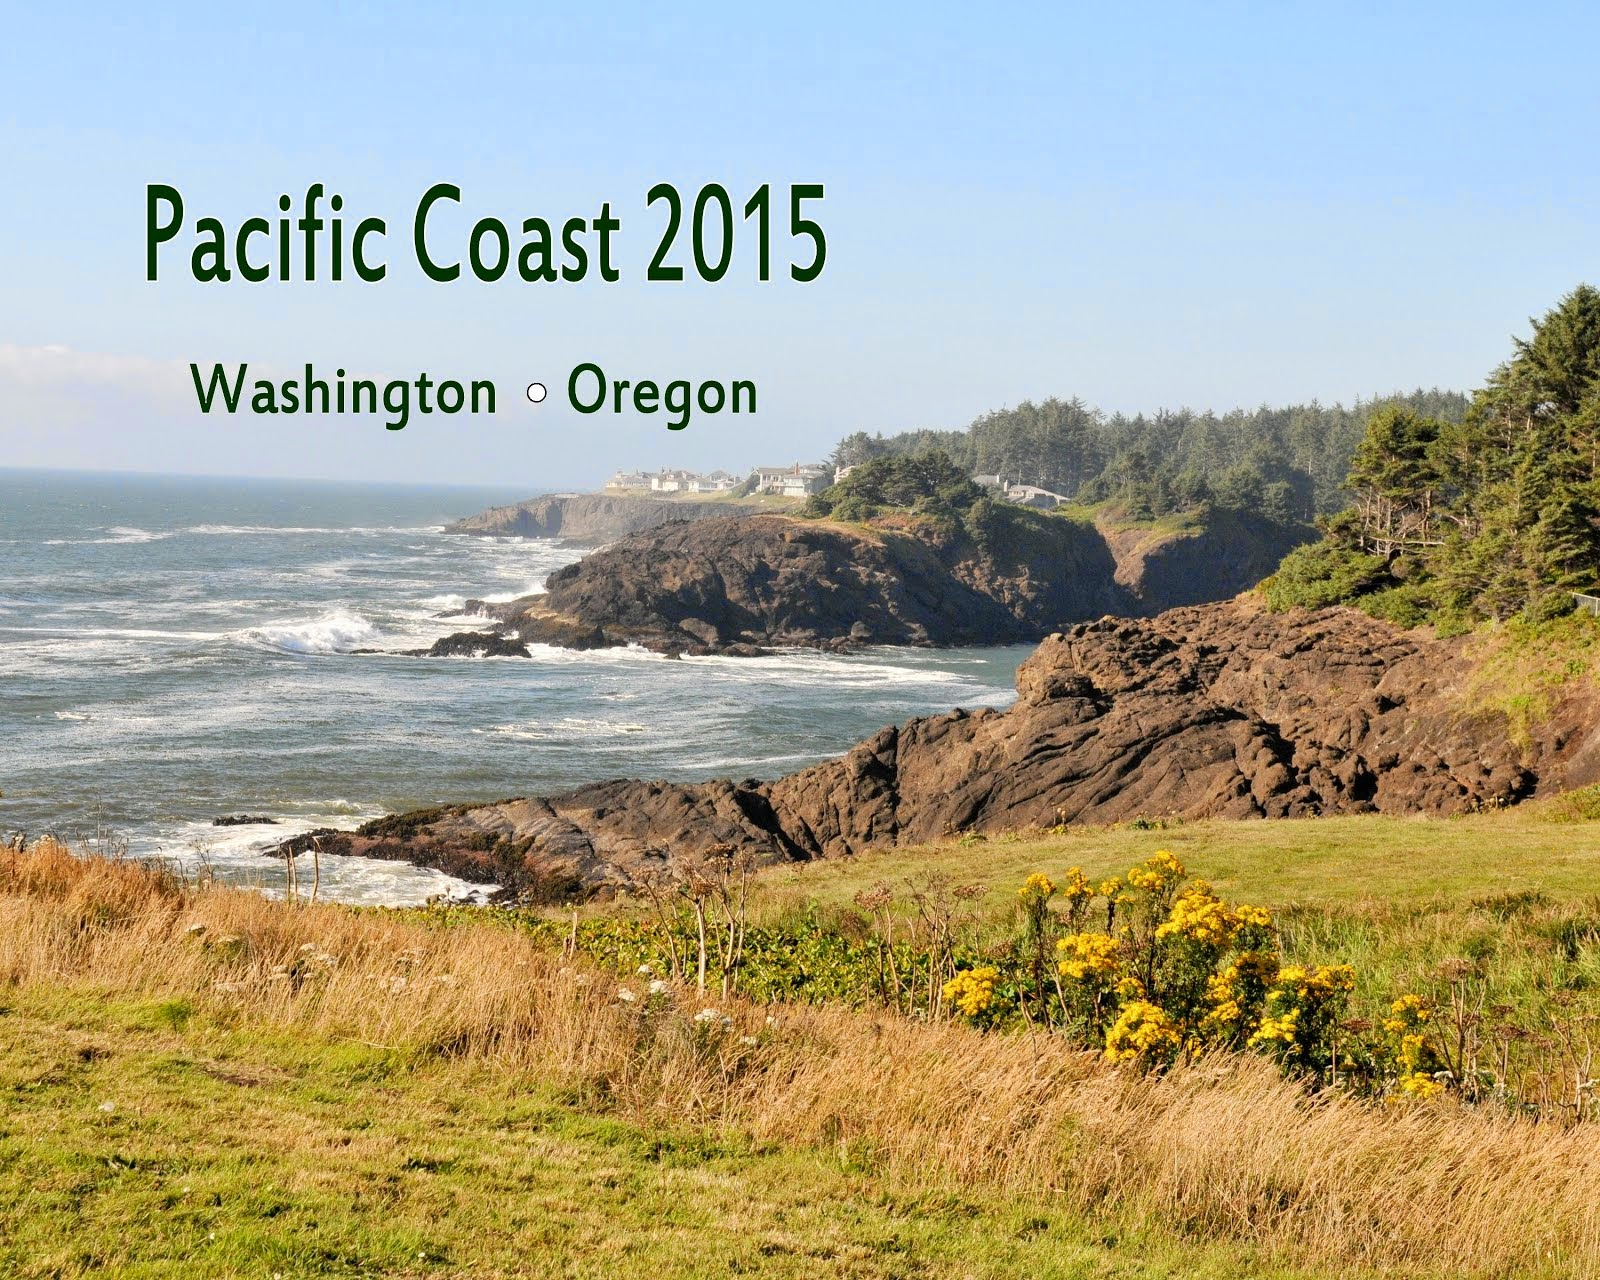 Pacific Coast Highway Calendar 2015